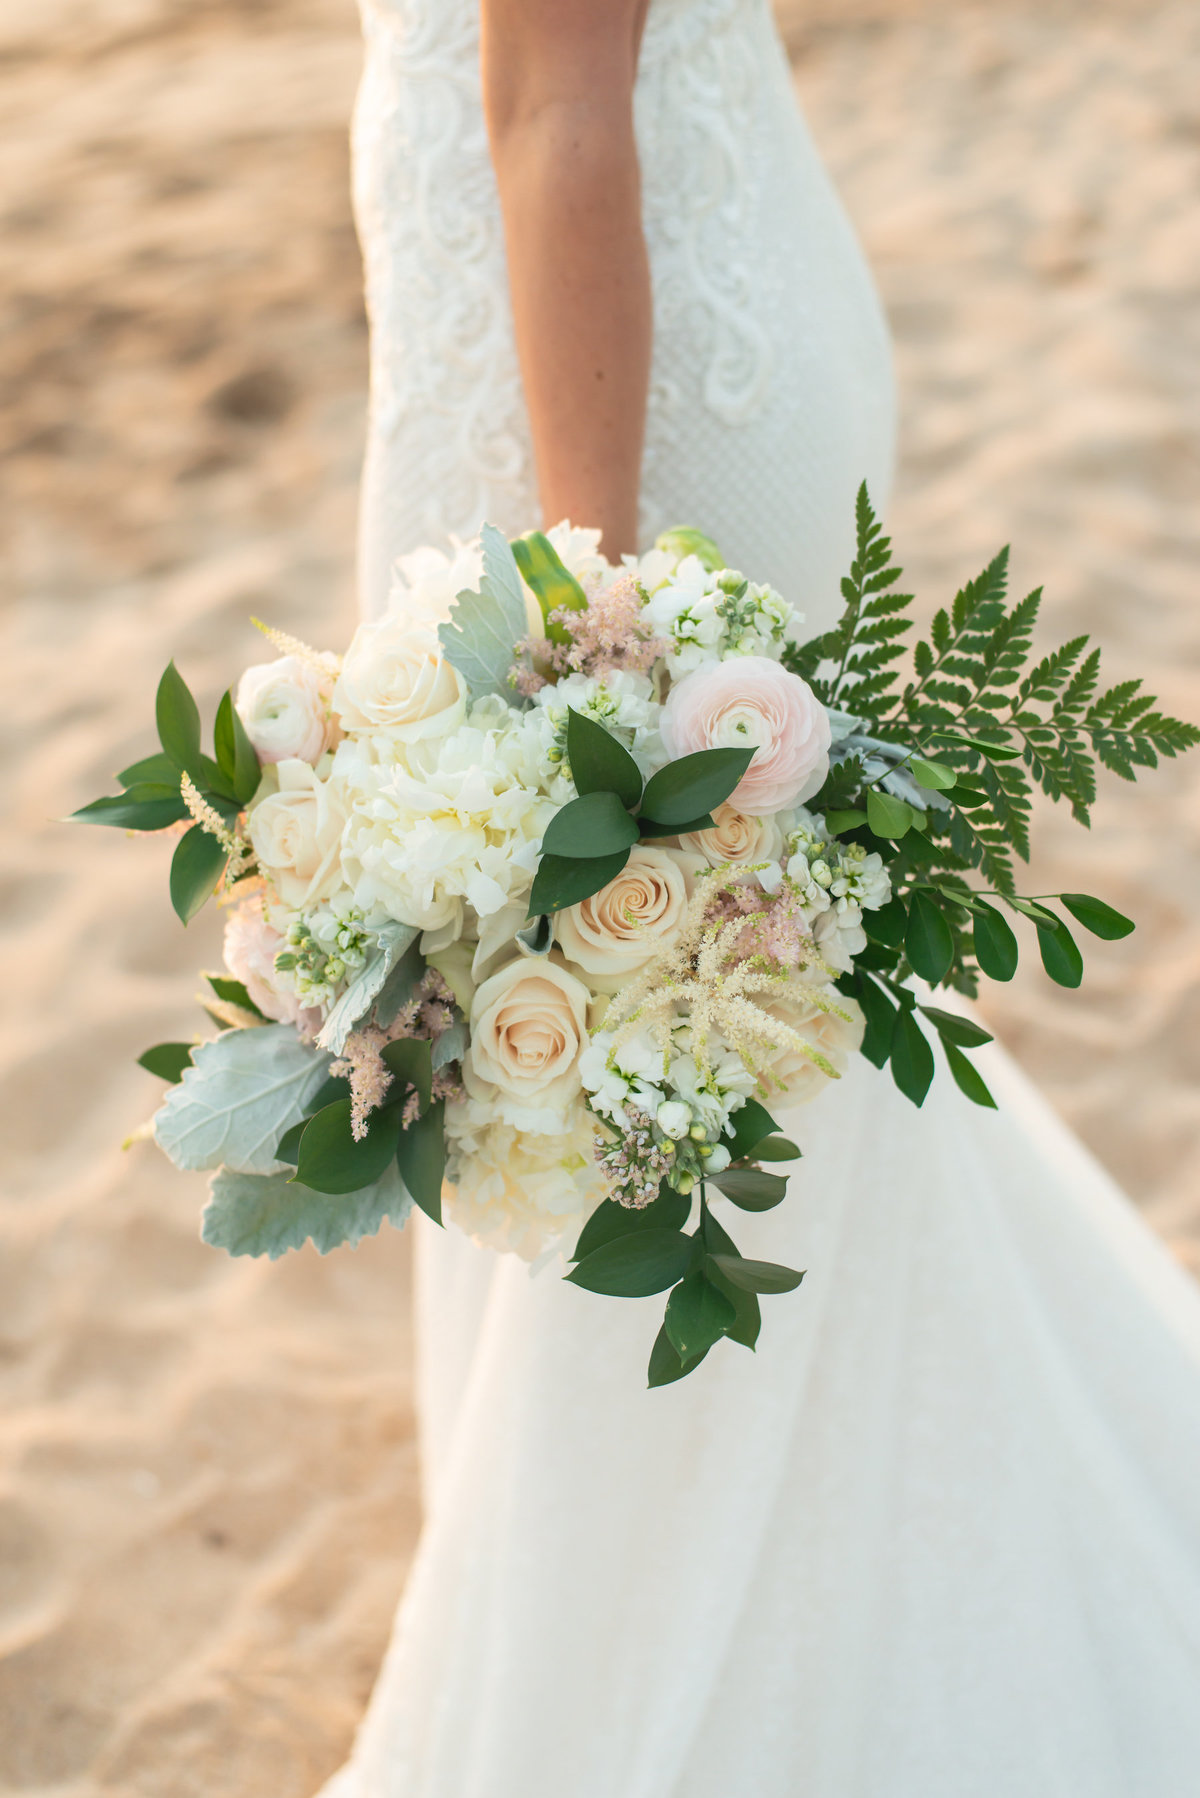 Maui wedding photography - wedding bouquet